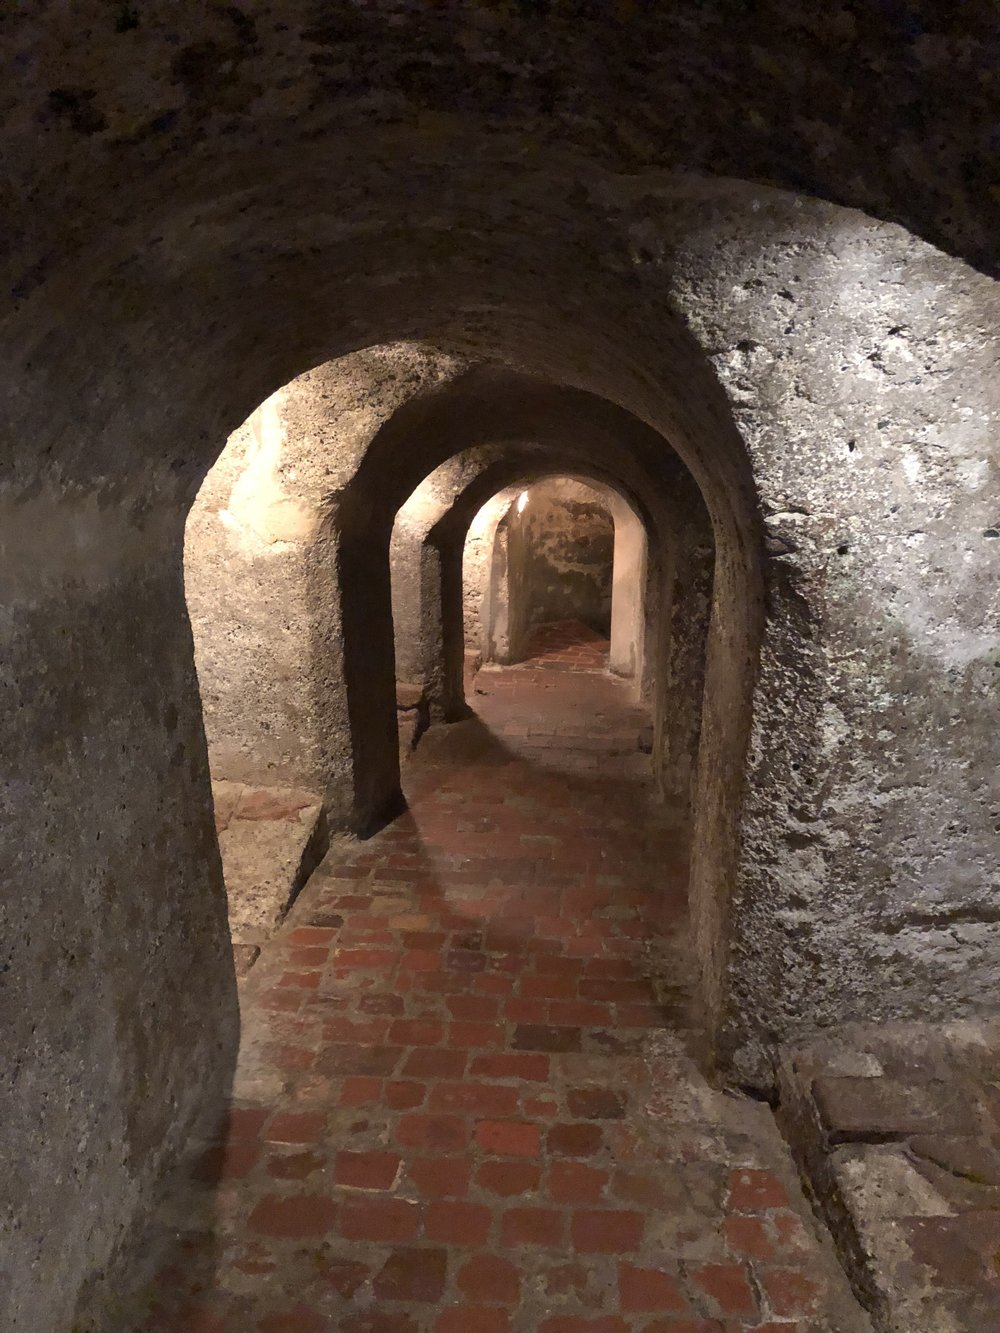 We were able to walk through some of the underground tunnels in the fortress.